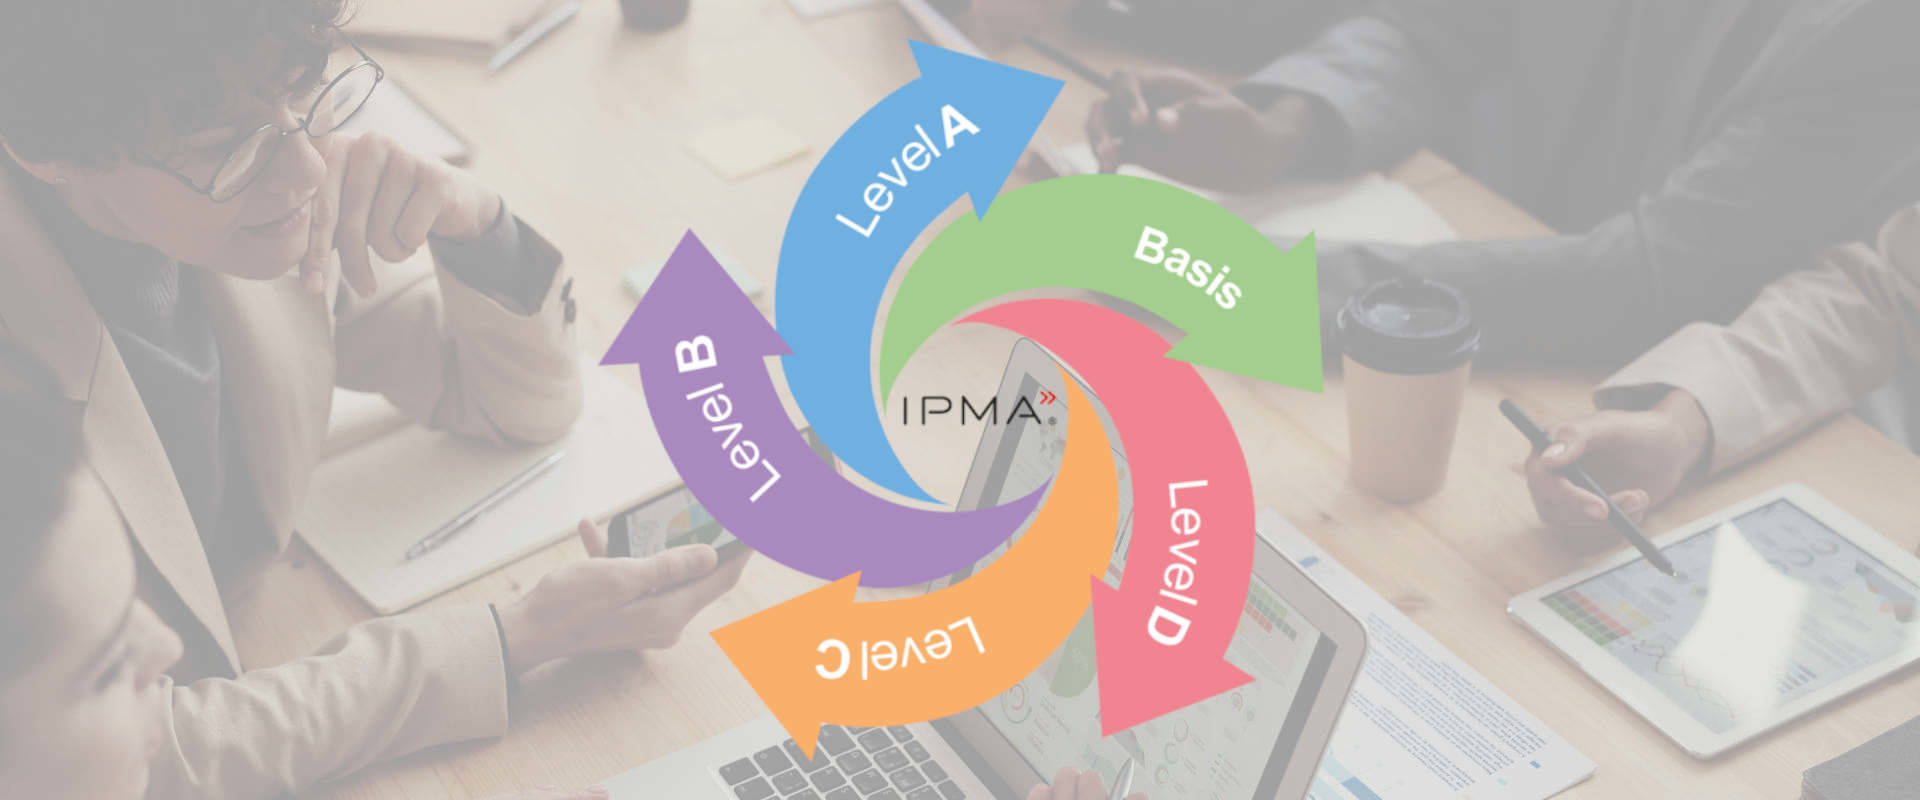 IPMA - Projektmanagement